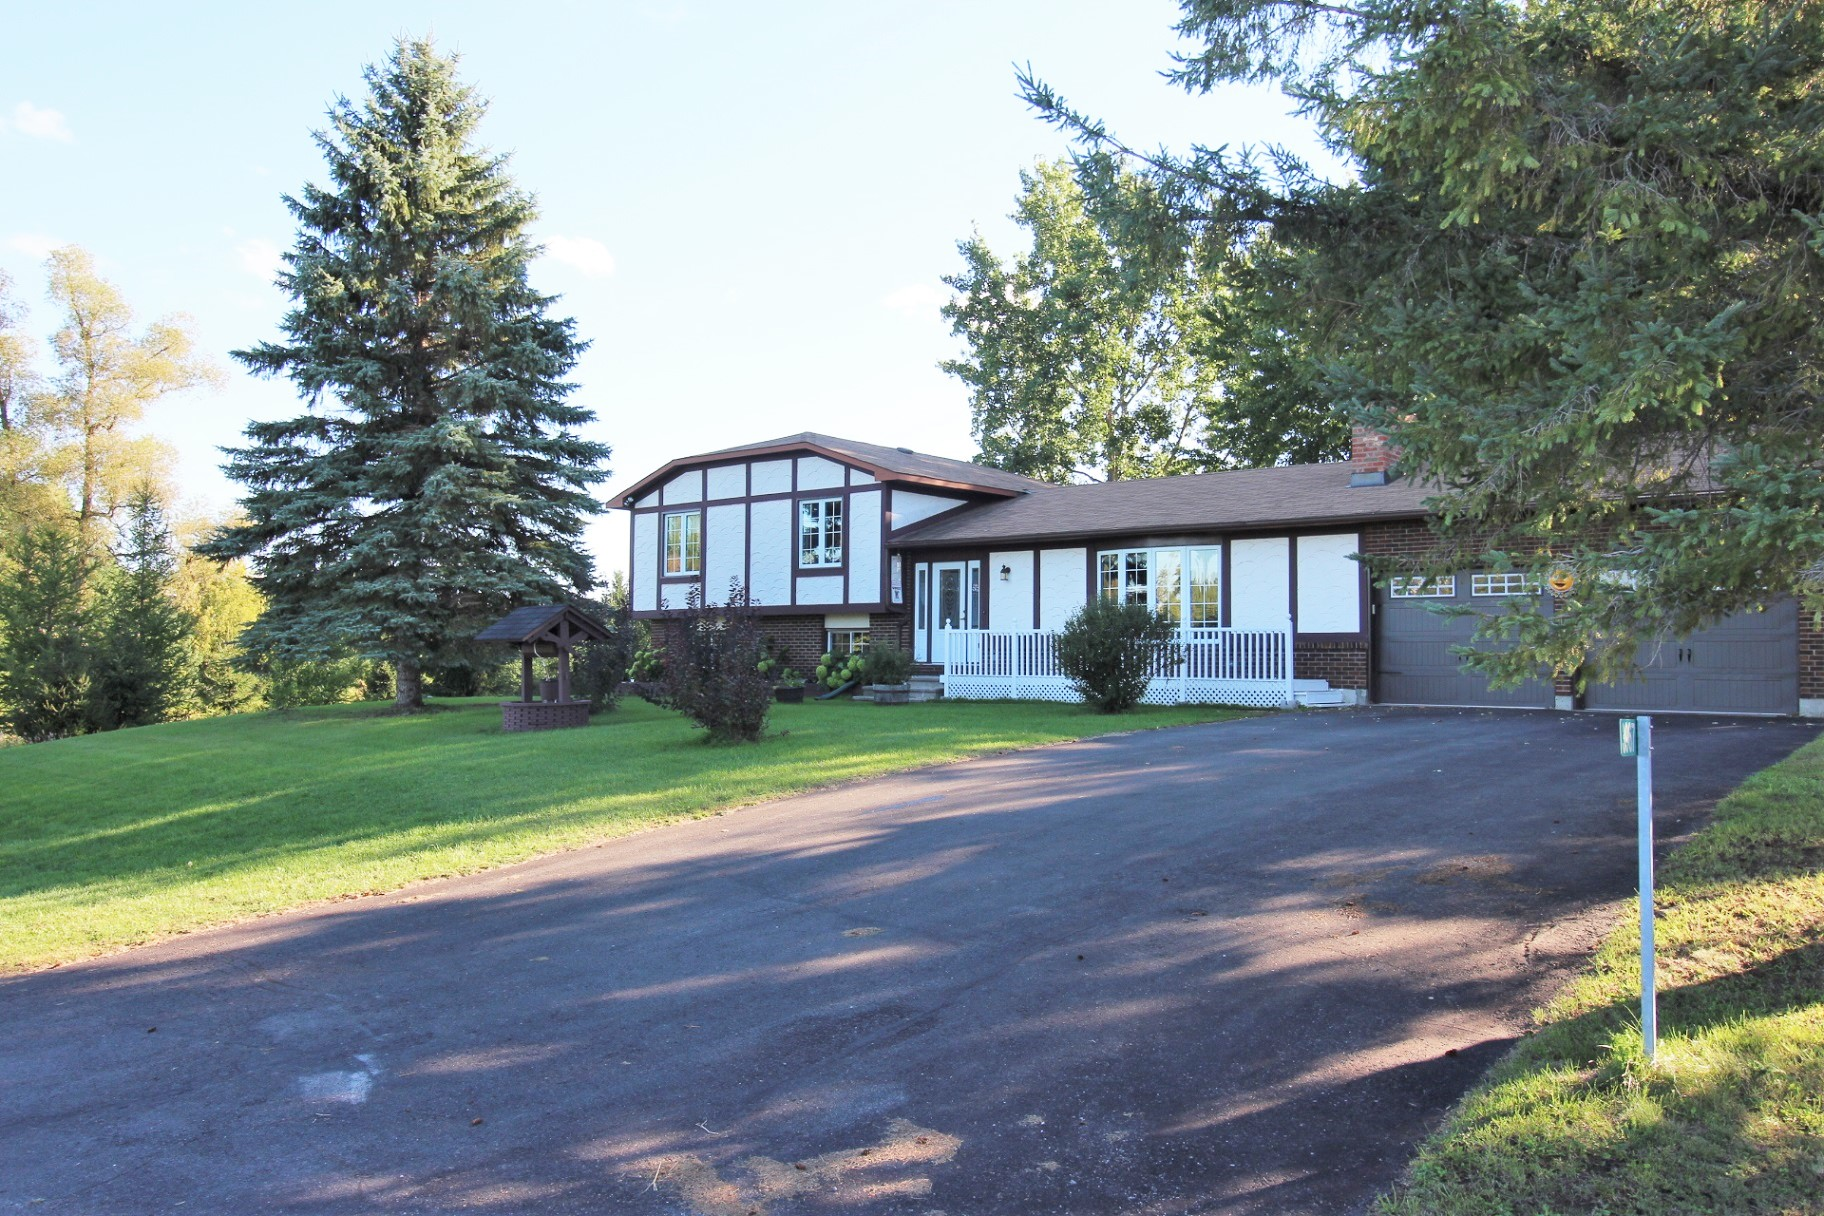 3967 Loggers Way - Mix of City & Country Living with this 4 Bedroom Split Home with 2.4 Acres in Kinburn!